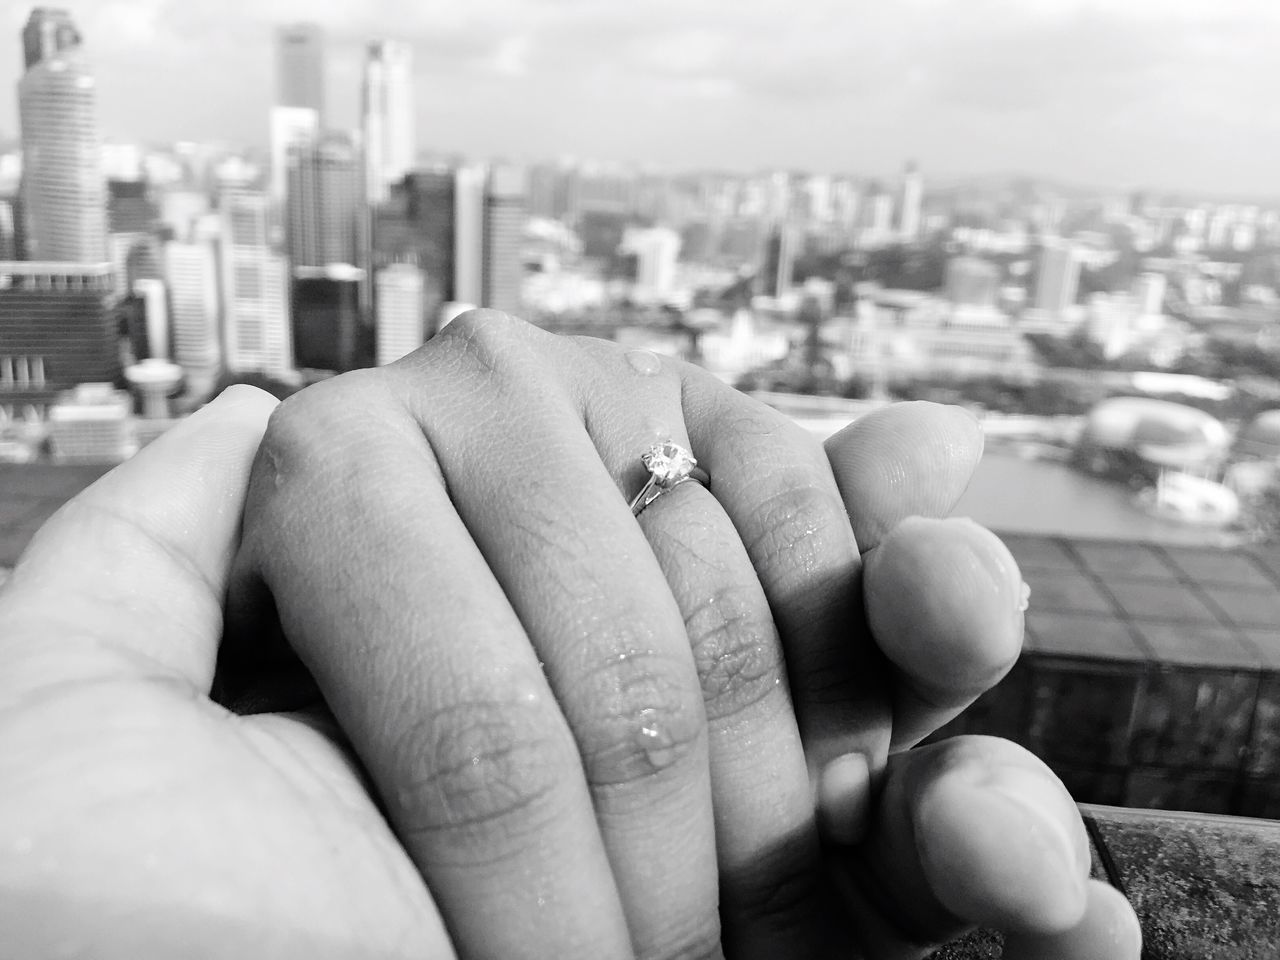 She said YES! Marryme LUCKIESTMAN Engaged Rooftopinfinitypool LetsGetLost